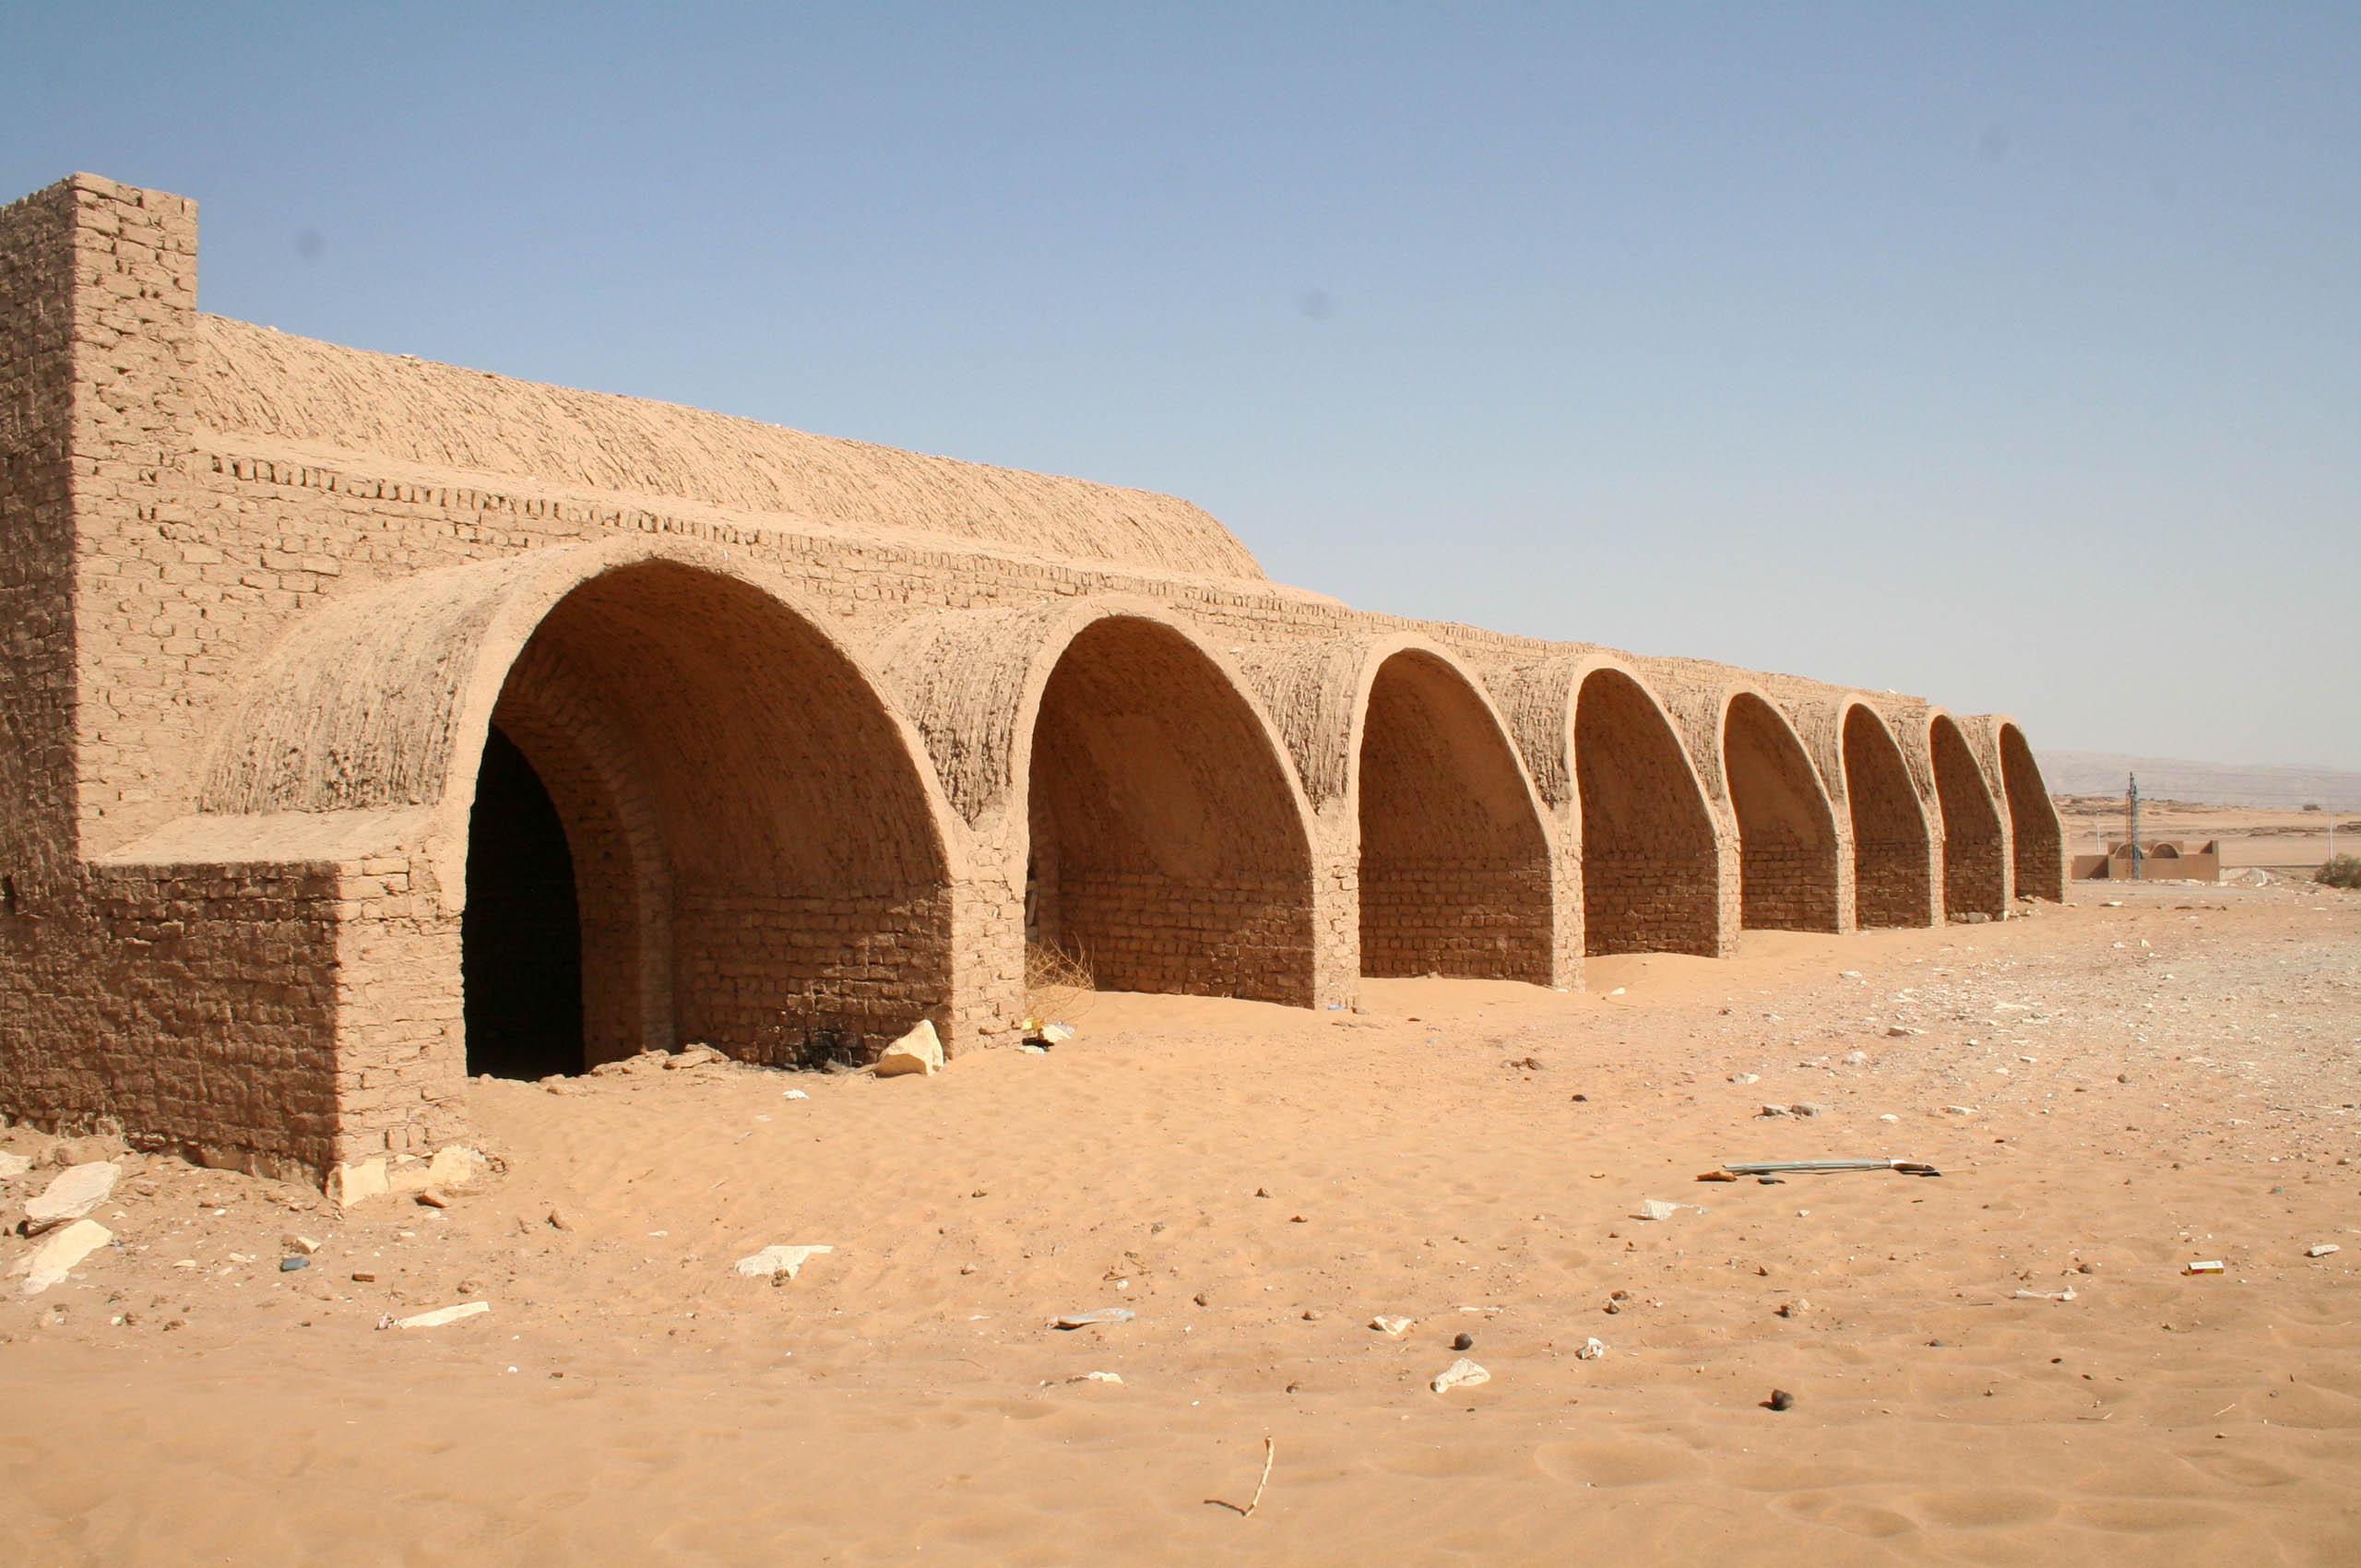 Hassan fathy and the architecture for the poor: the controversy of